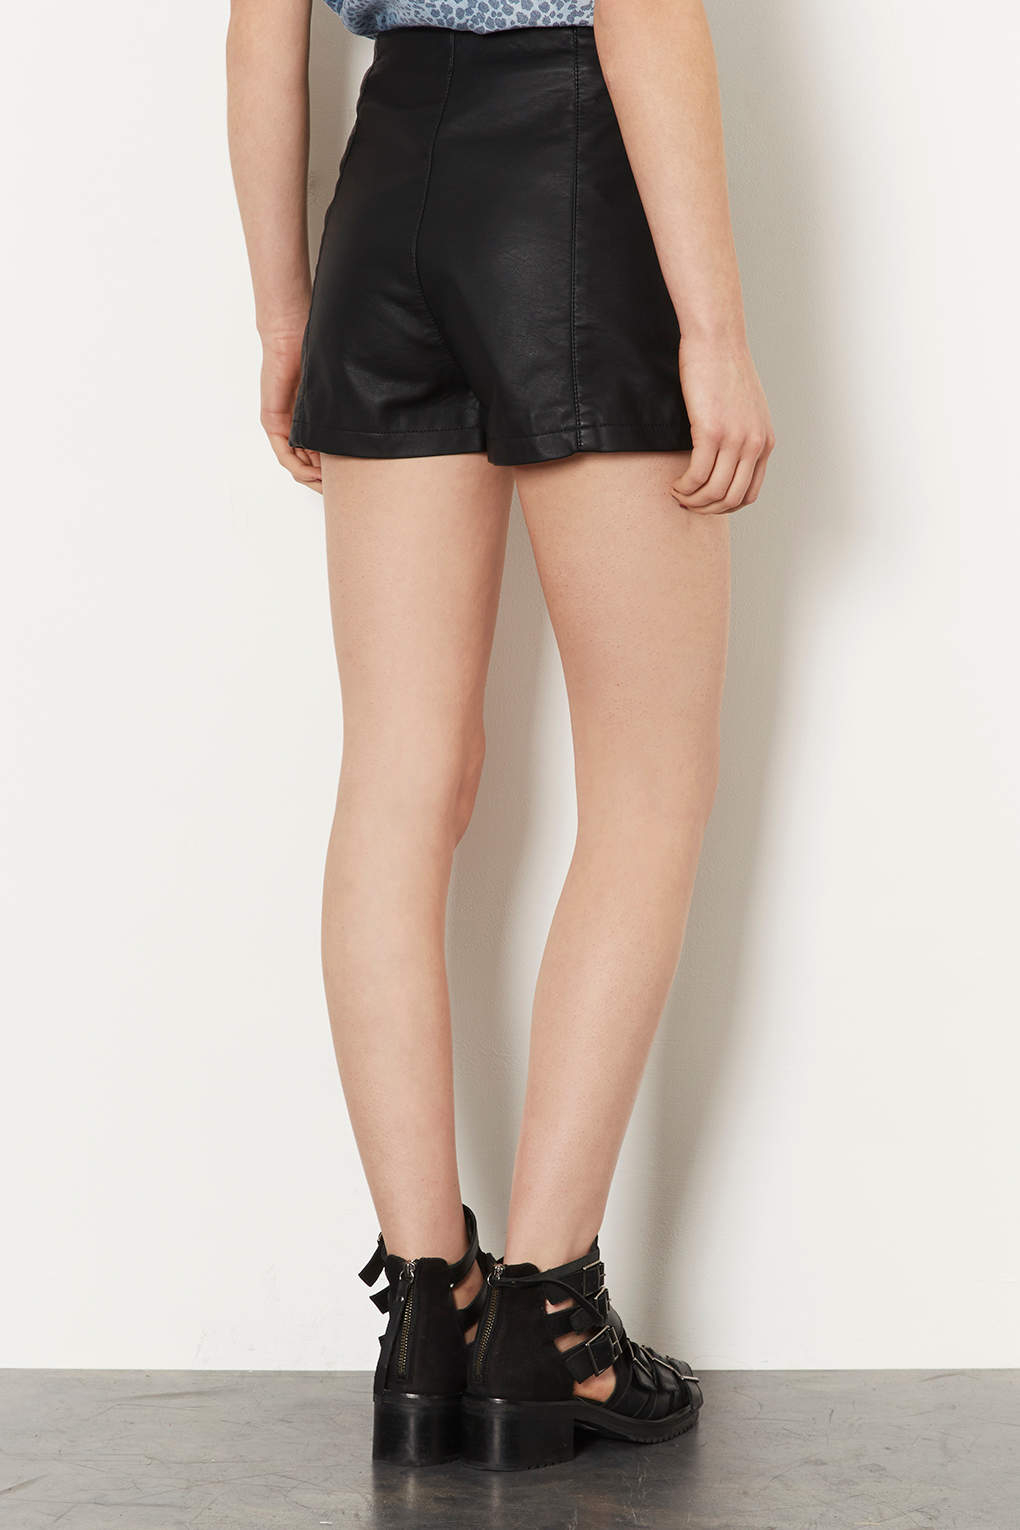 06a07495ba0e9 TOPSHOP Petite Leather Look Shorts in Black - Lyst